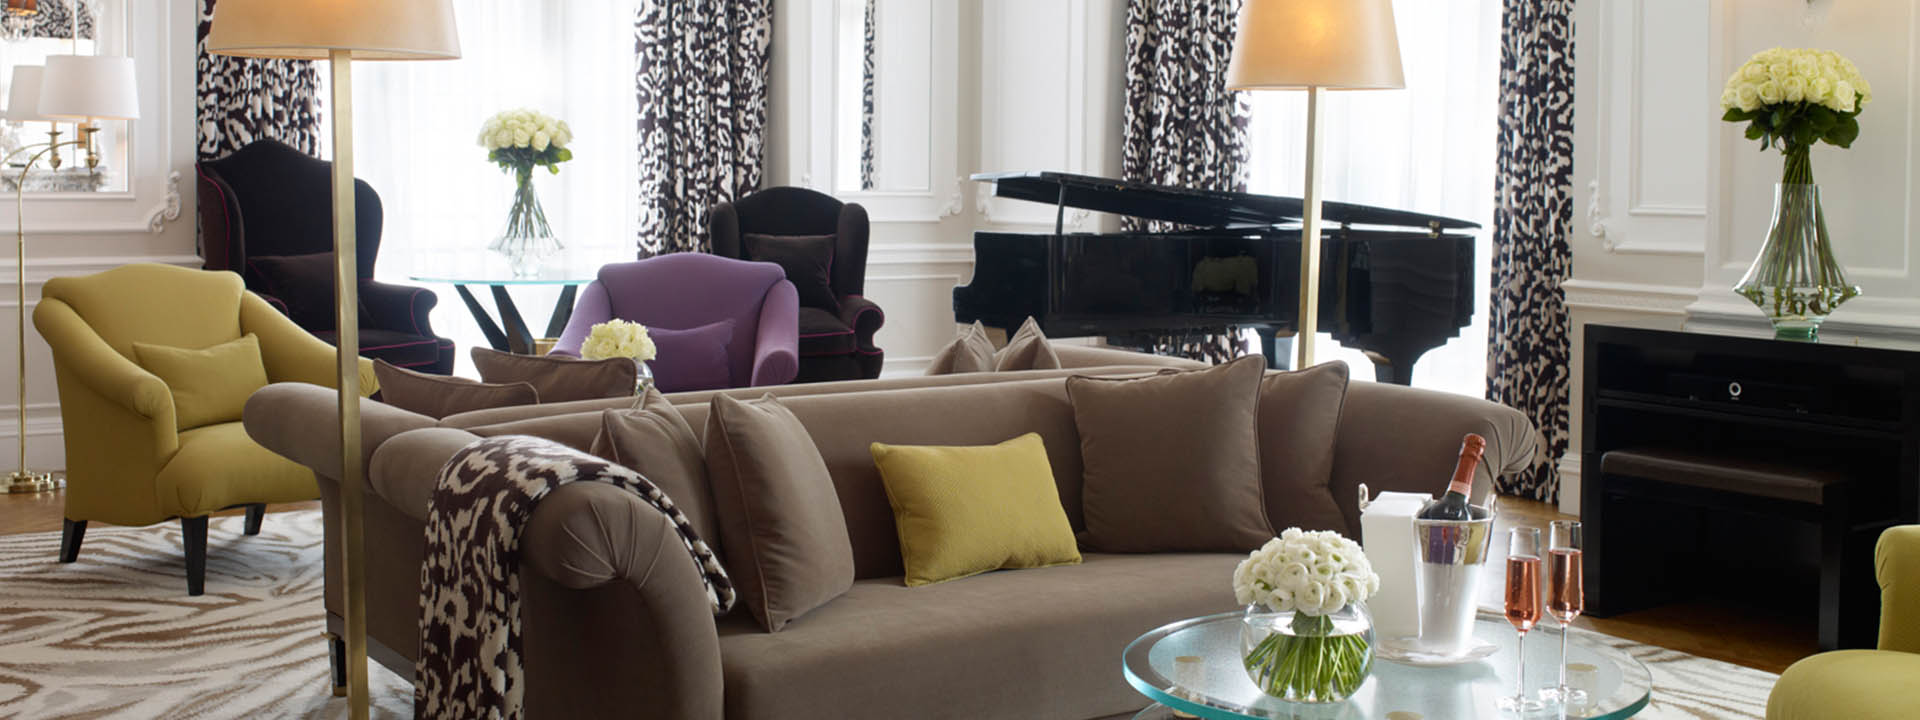 Grand Piano Suite Living Room